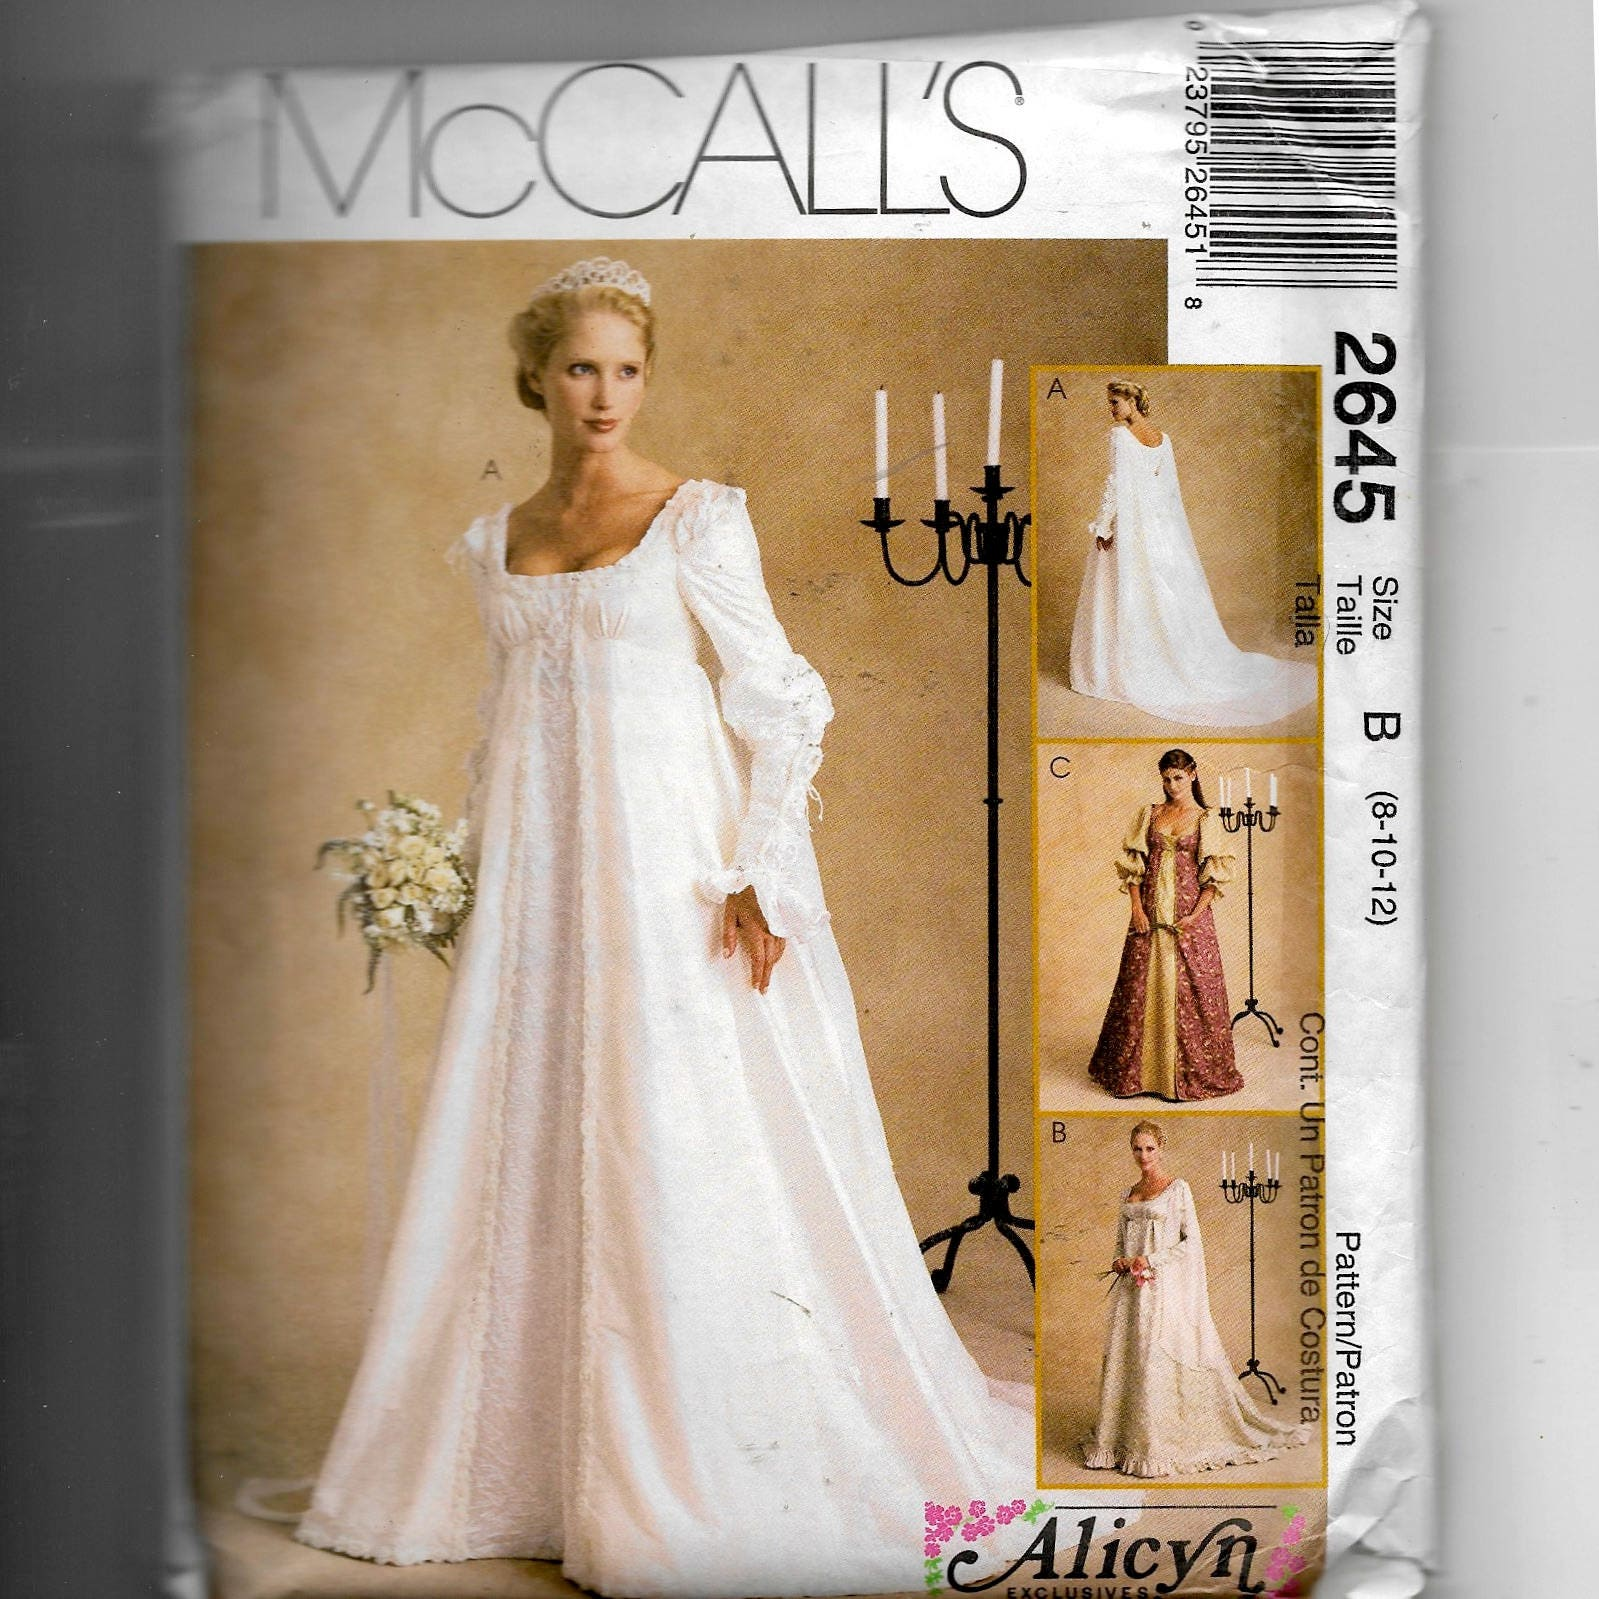 McCall\'s Misses Bridal Gowns Pattern 2645 from NewAgain on Etsy Studio